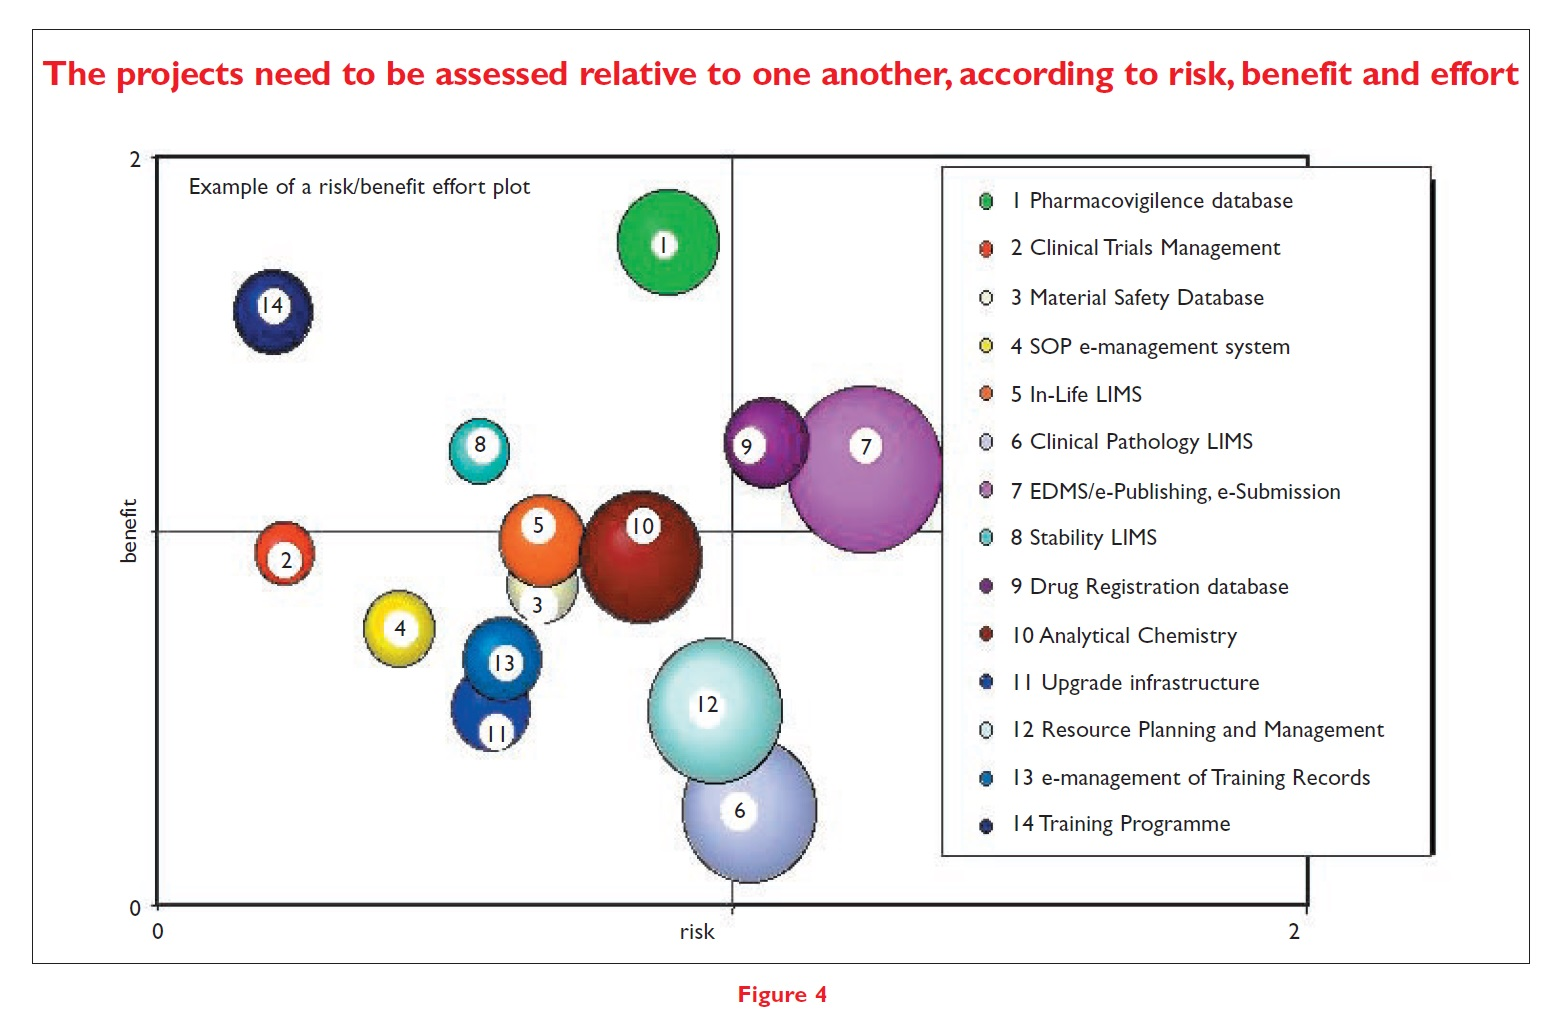 Figure 4 The projects need to be assessed relative to one another, according to risk, benefit and effort